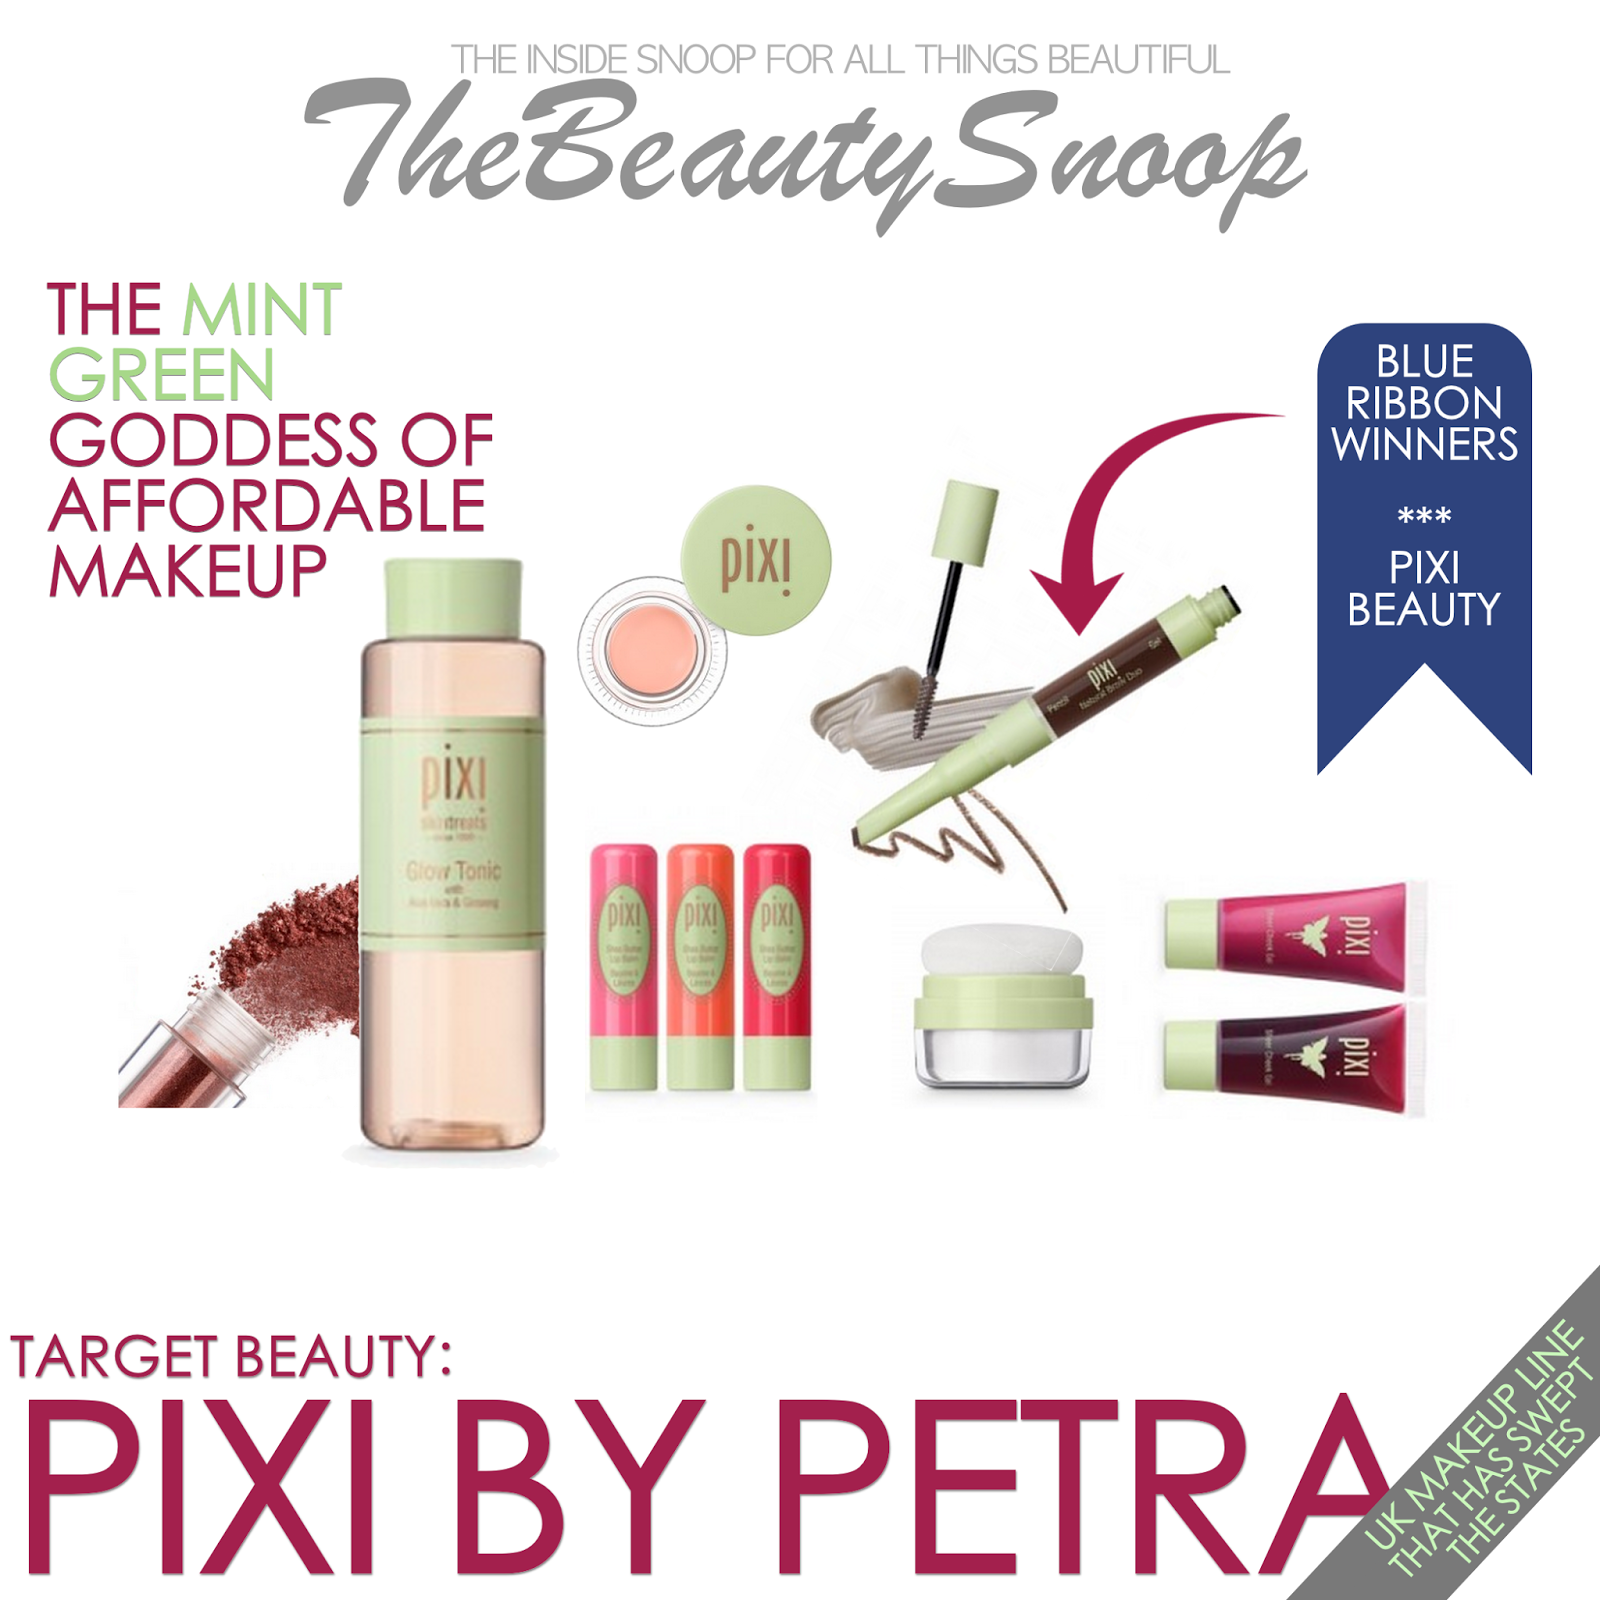 TARGET BEAUTY A PIXI BY PETRA MAKEUP REVIEW Pixie